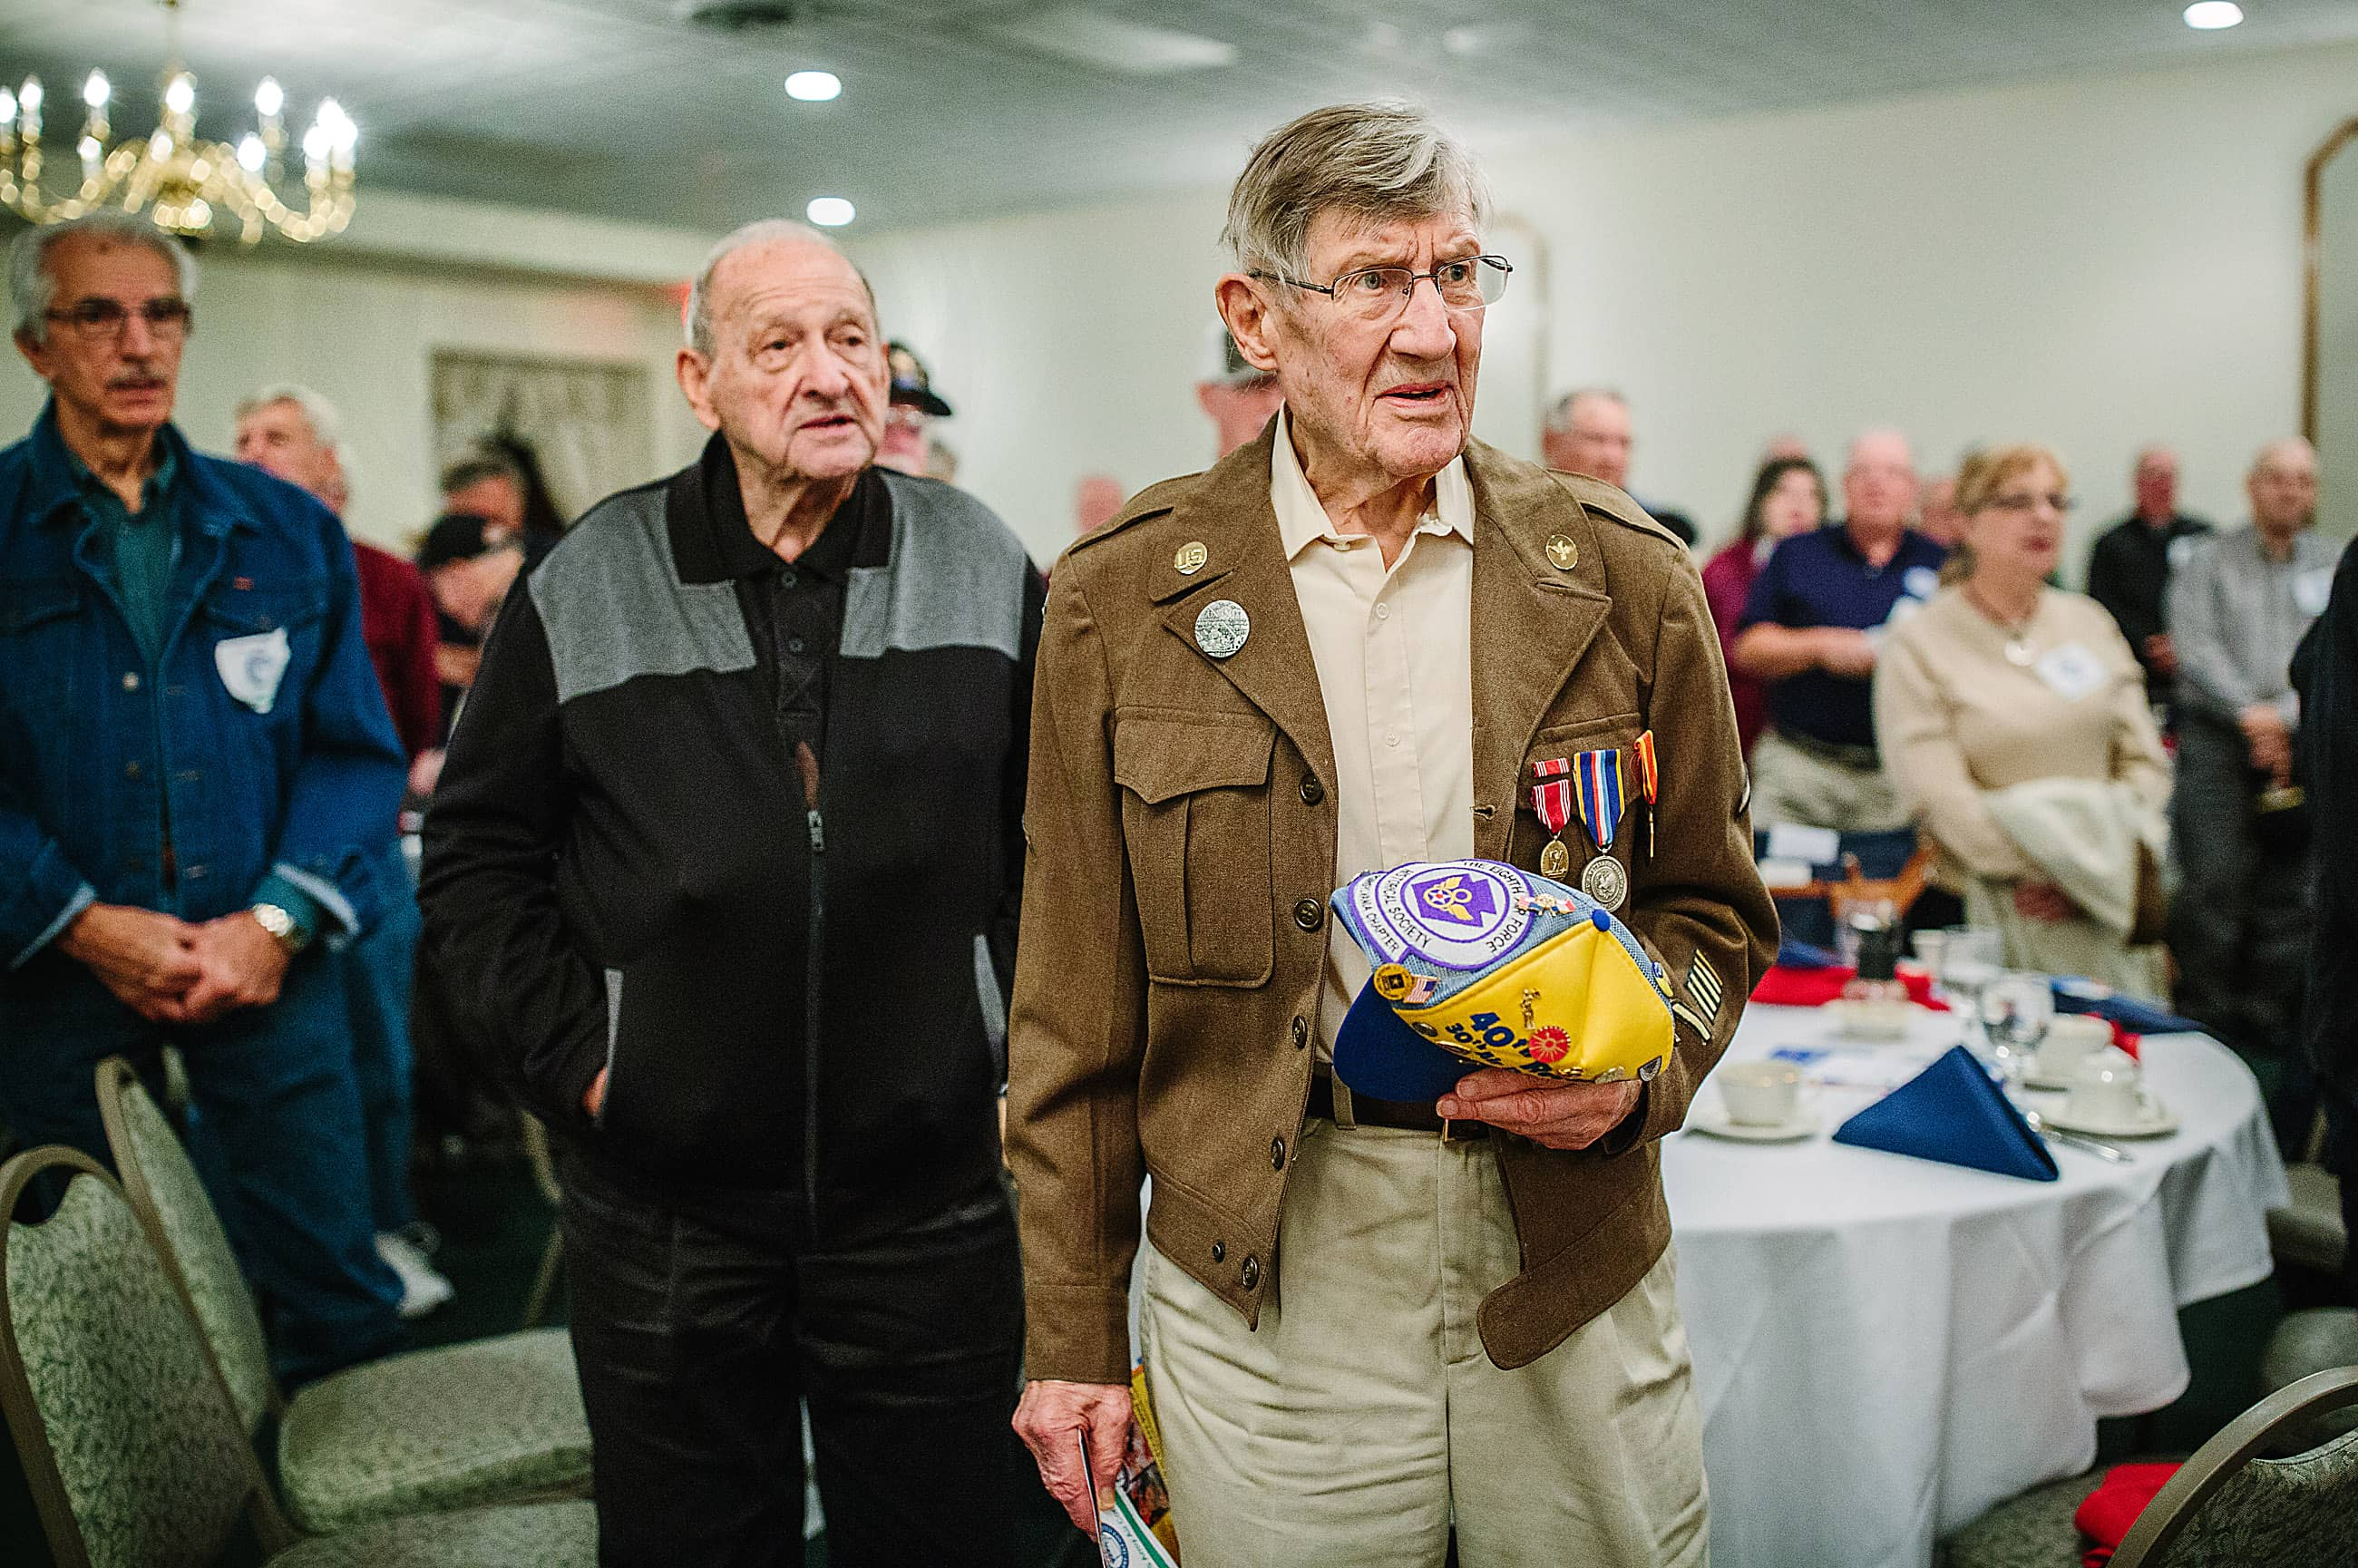 US Army Air Corps veteran Hartley Baird of Bethel Park, sings 'God Bless America' during a Veteran's Breakfast Club event at Salvator's Events and Catering in Baldwin on October 25, 2016. (Andrew Rush/Post-Gazette)